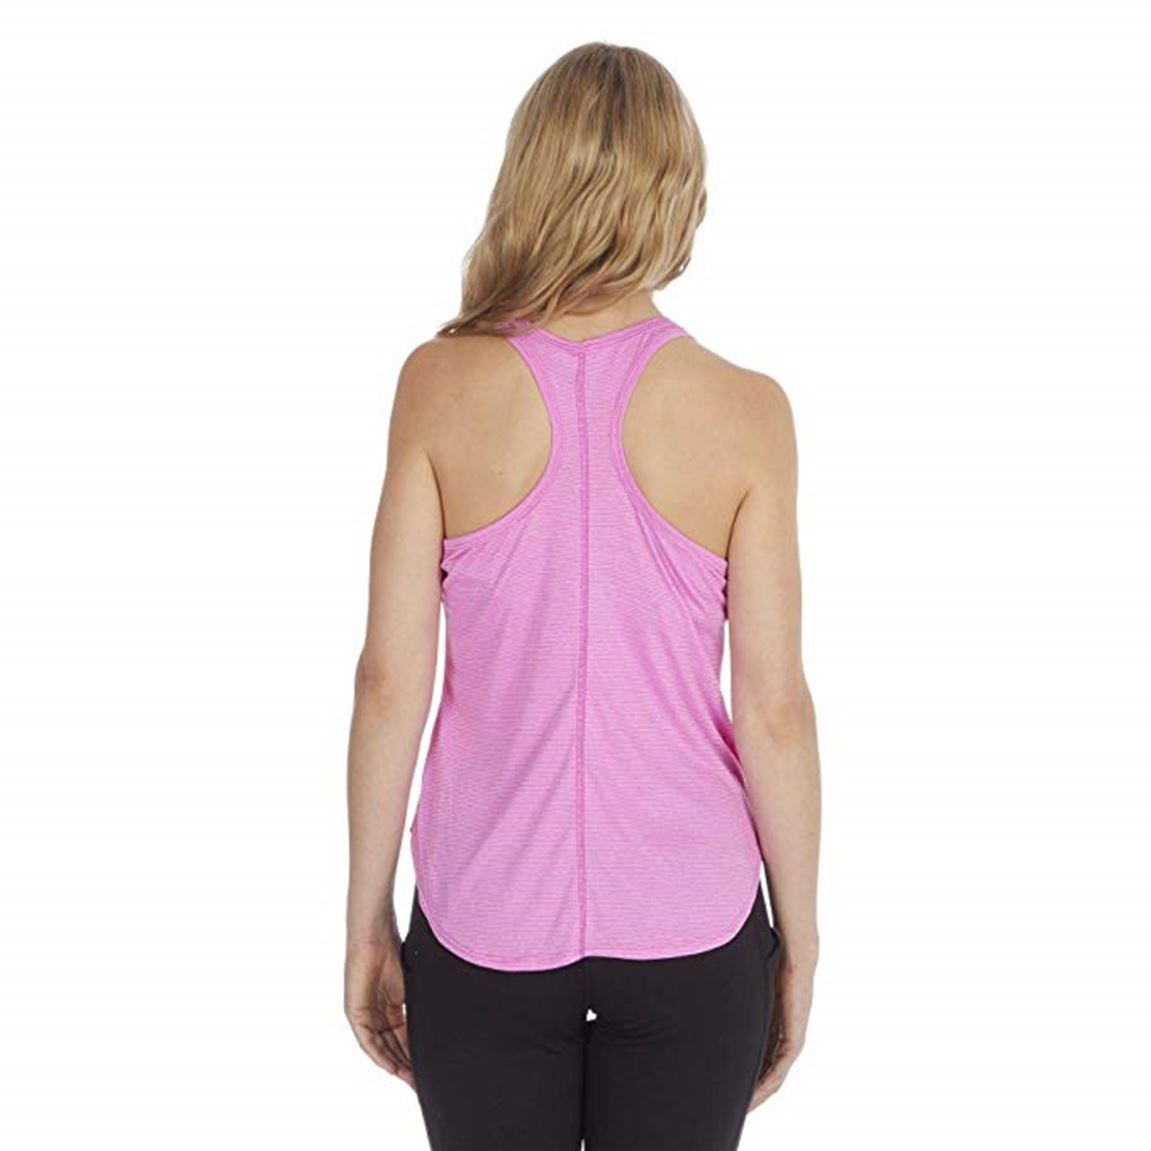 Ladies-Womens-Red-Tag-Active-Racer-Back-Yoga-Gym-Exercise-Vest-Tank-Top thumbnail 9